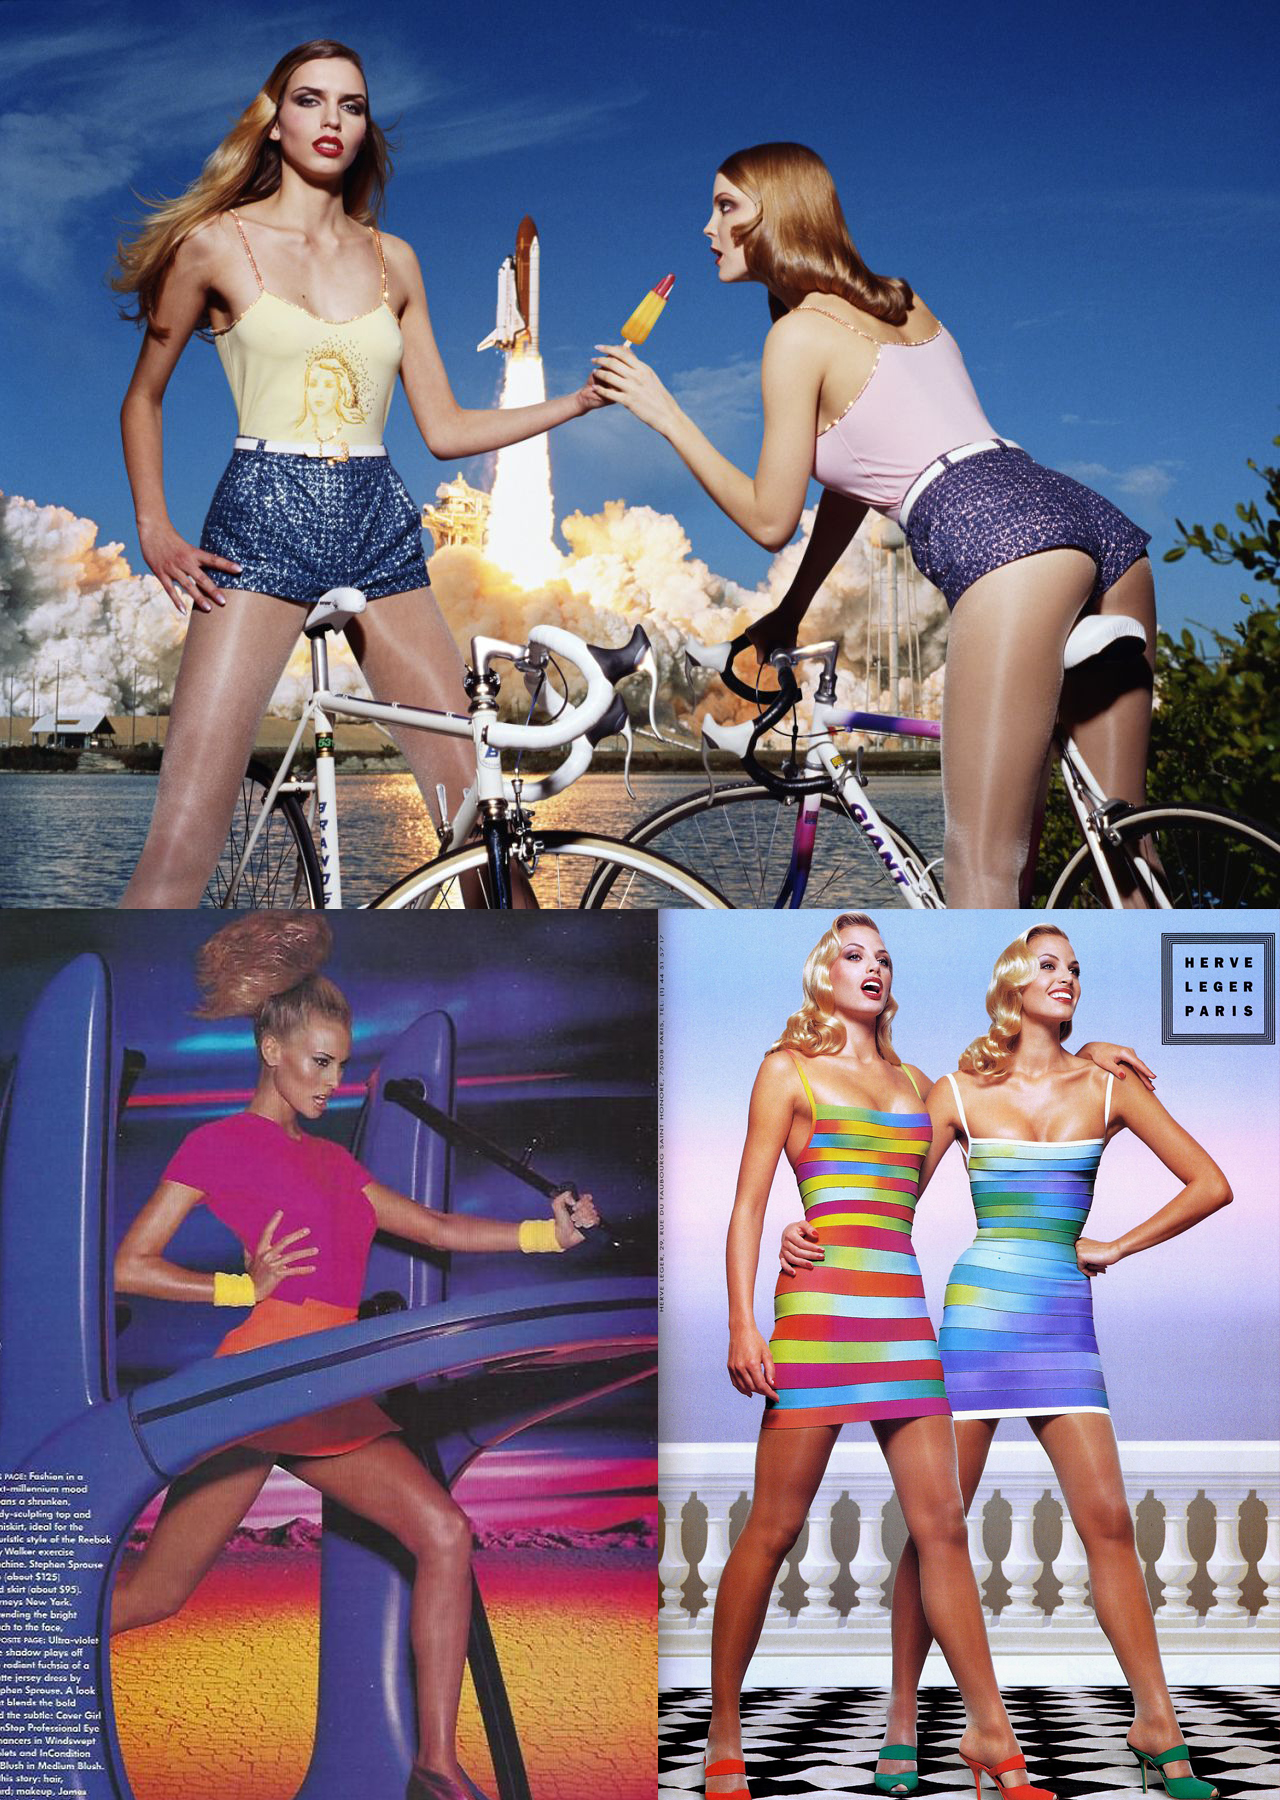 Collage of images: Top image - Two women on bikes with rocket launch in background, Left Bottom - Woman exercising with stylized mountain background, Right Bottom - Two women in striped dresses